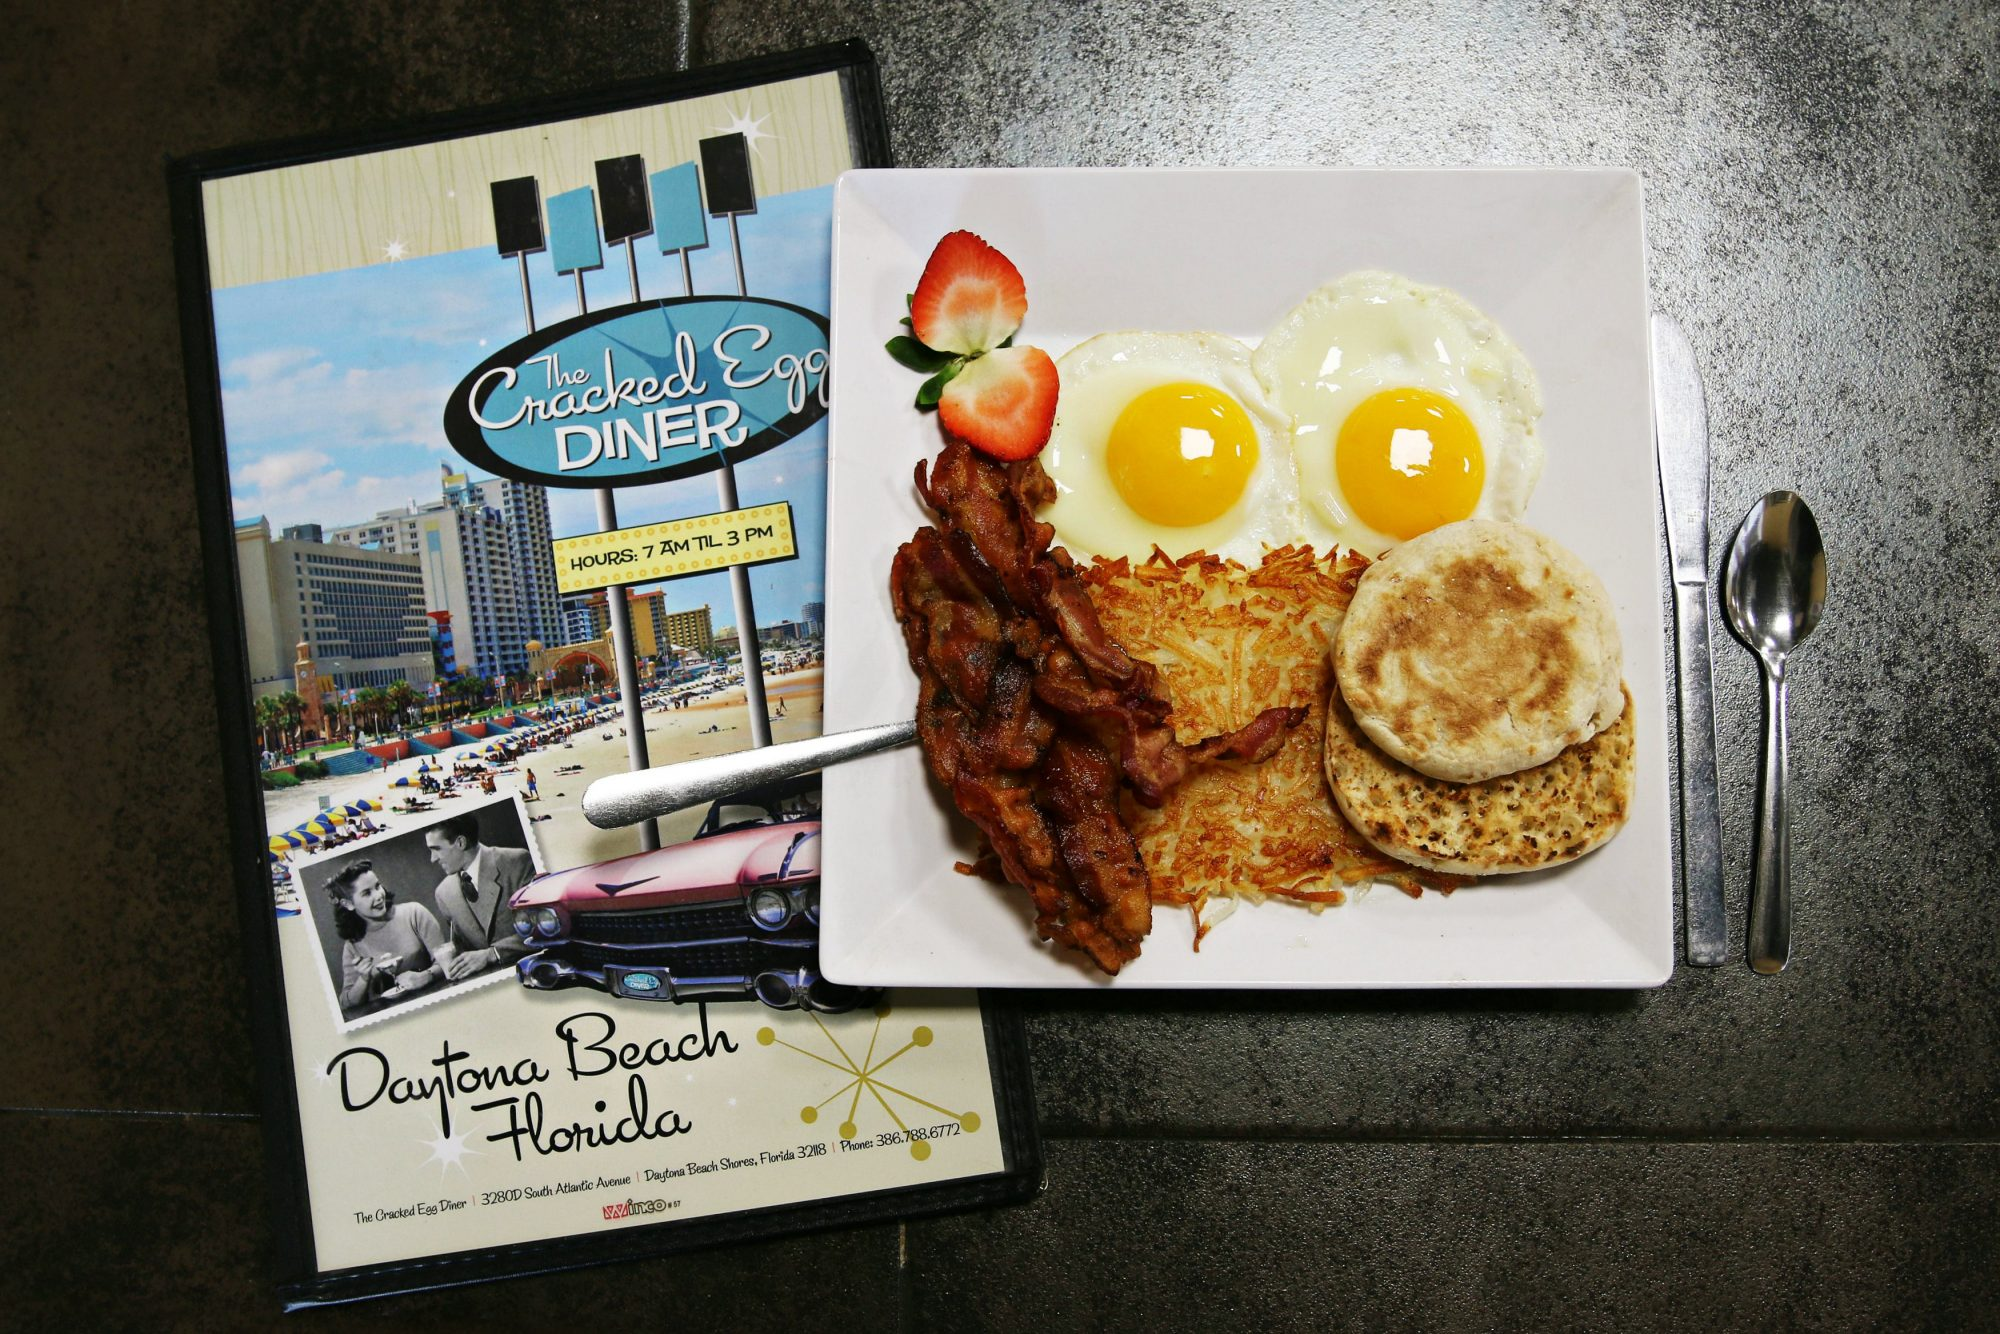 The Cracked Egg Diner (Daytona Beach Shores, Florida)